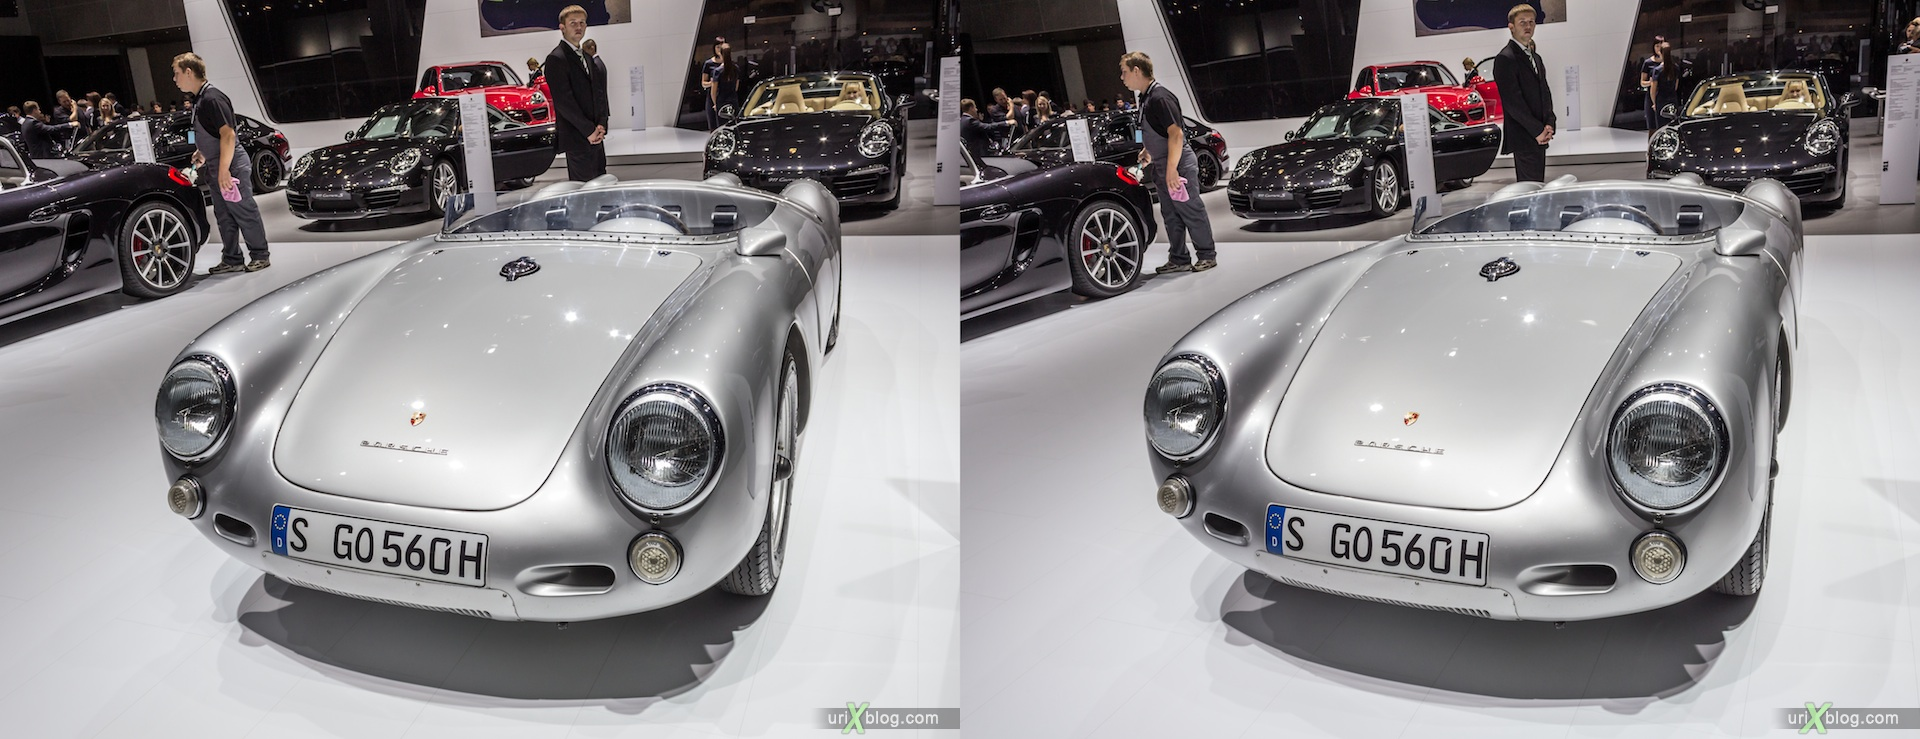 2012, Porsche, Moscow International Automobile Salon, auto show, 3D, stereo pair, cross-eyed, crossview